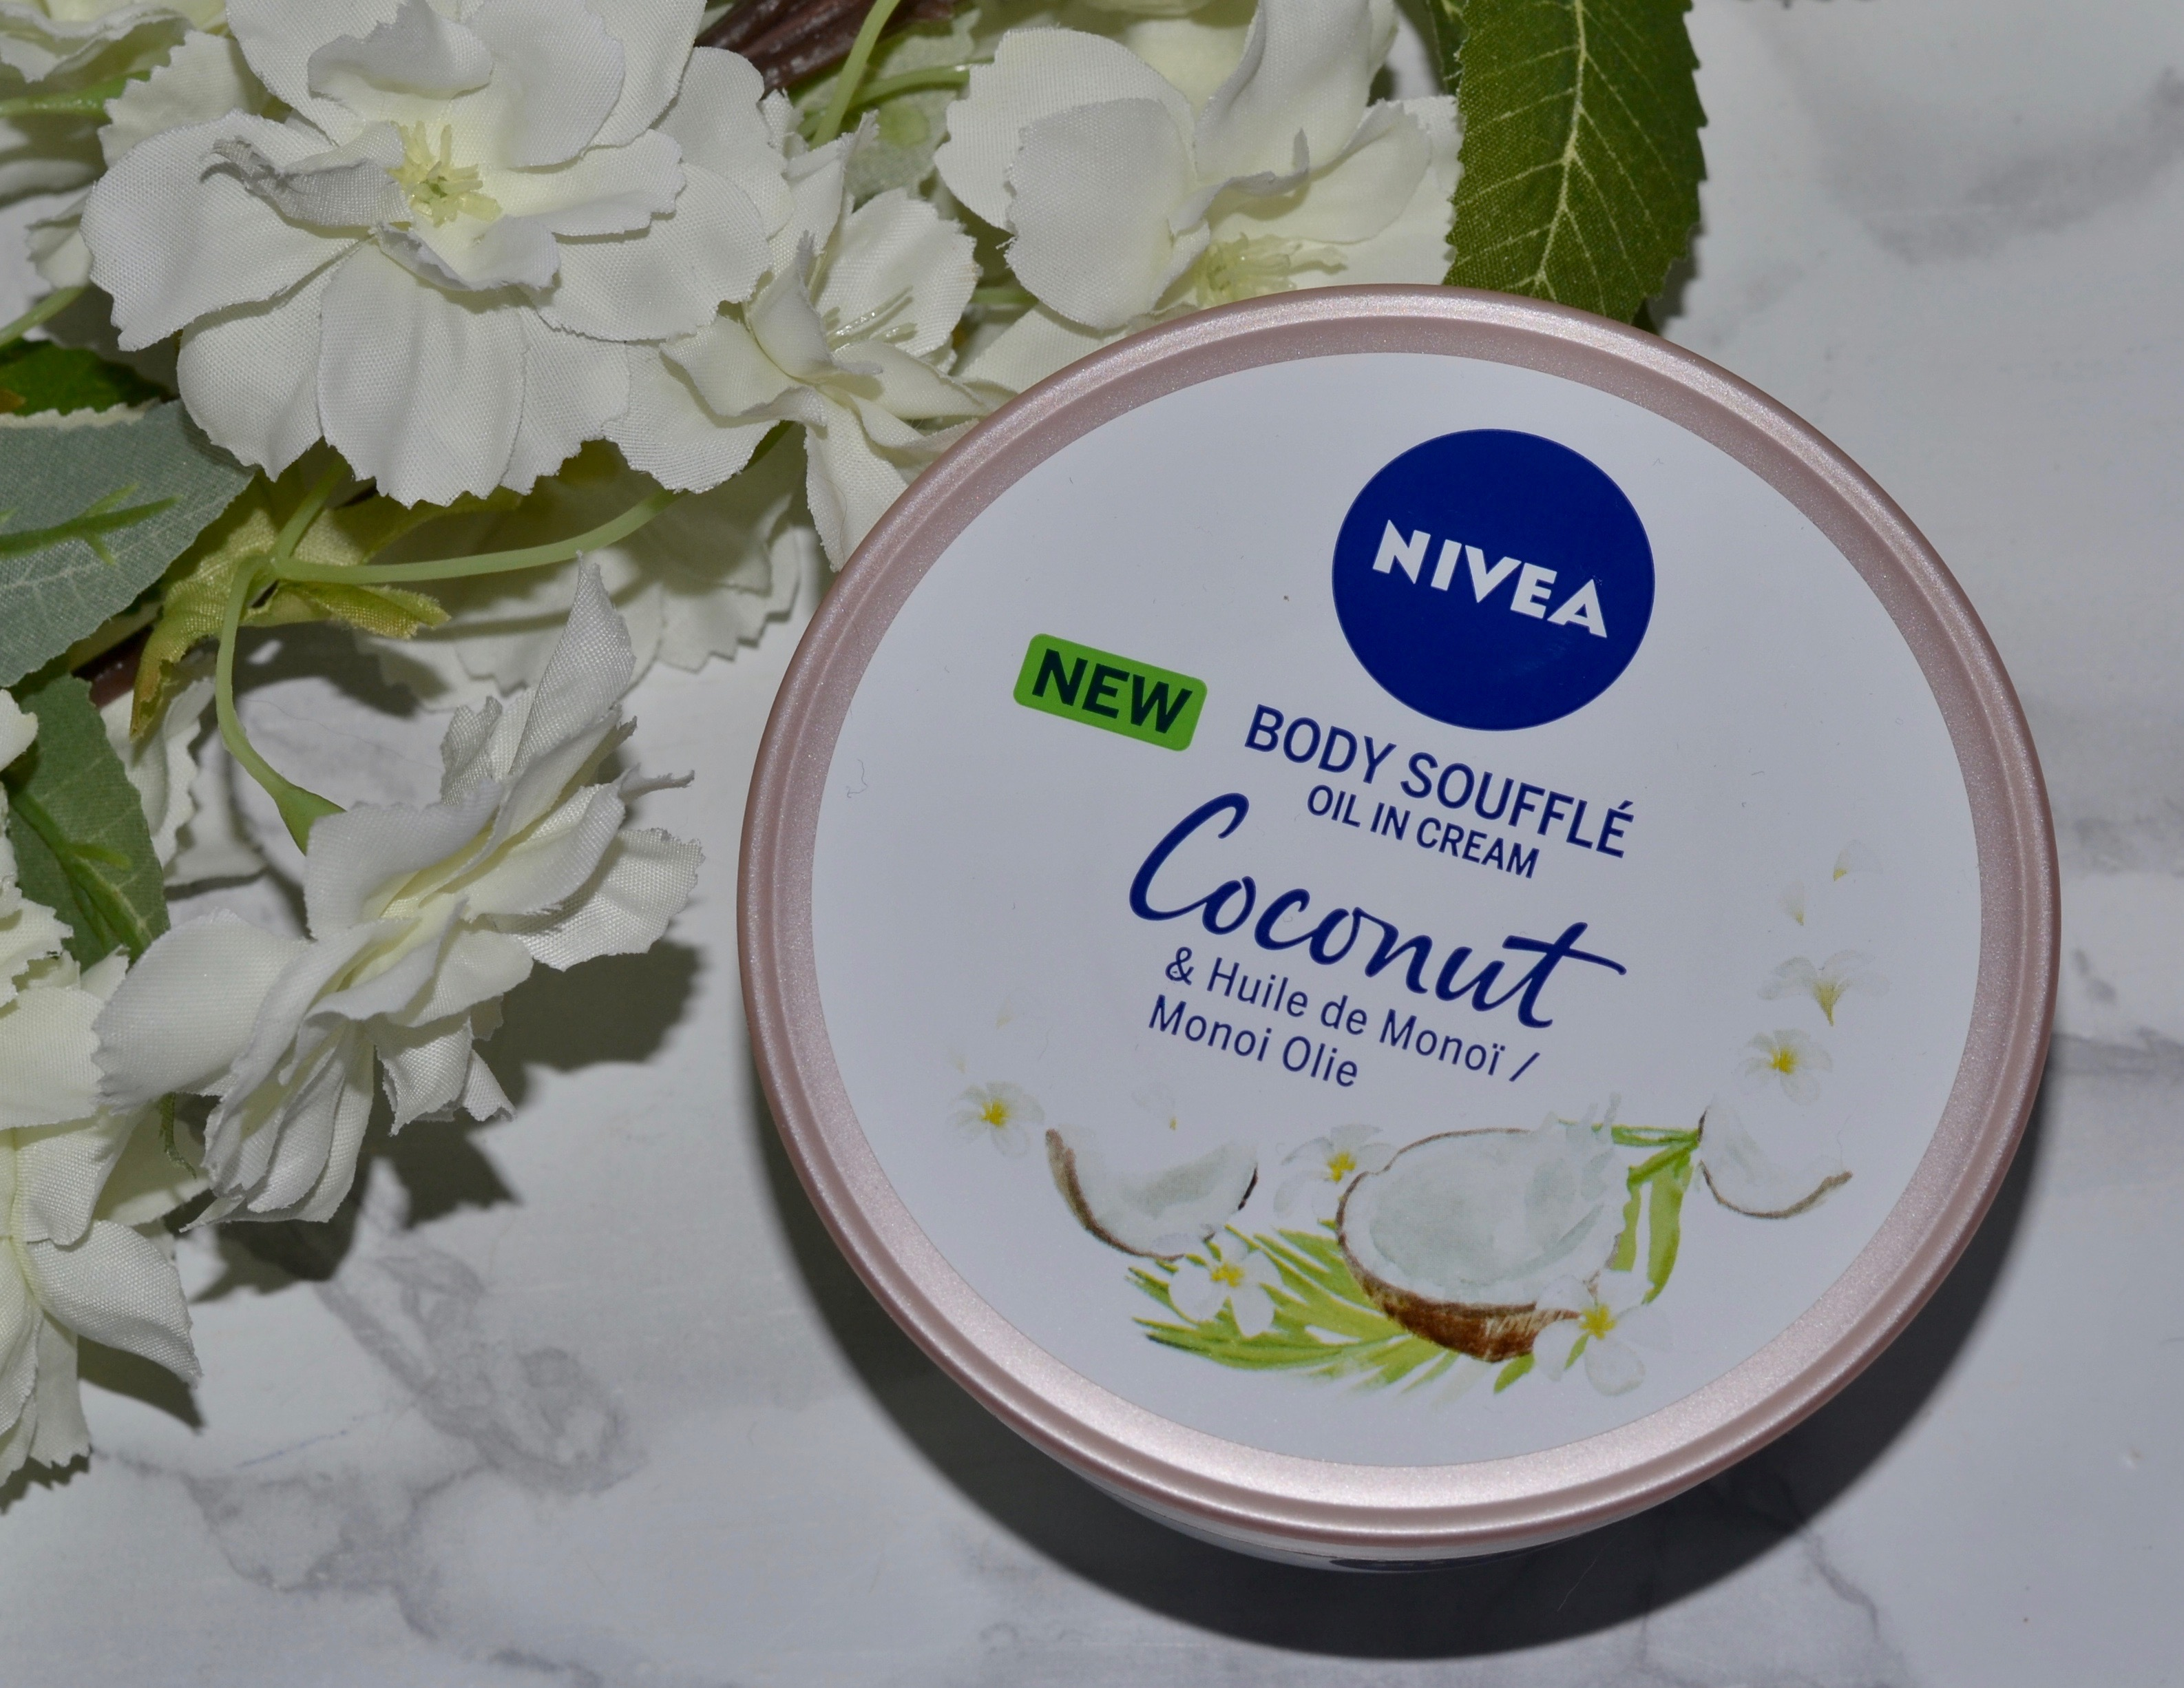 Nivea Body Soufflé Coconut